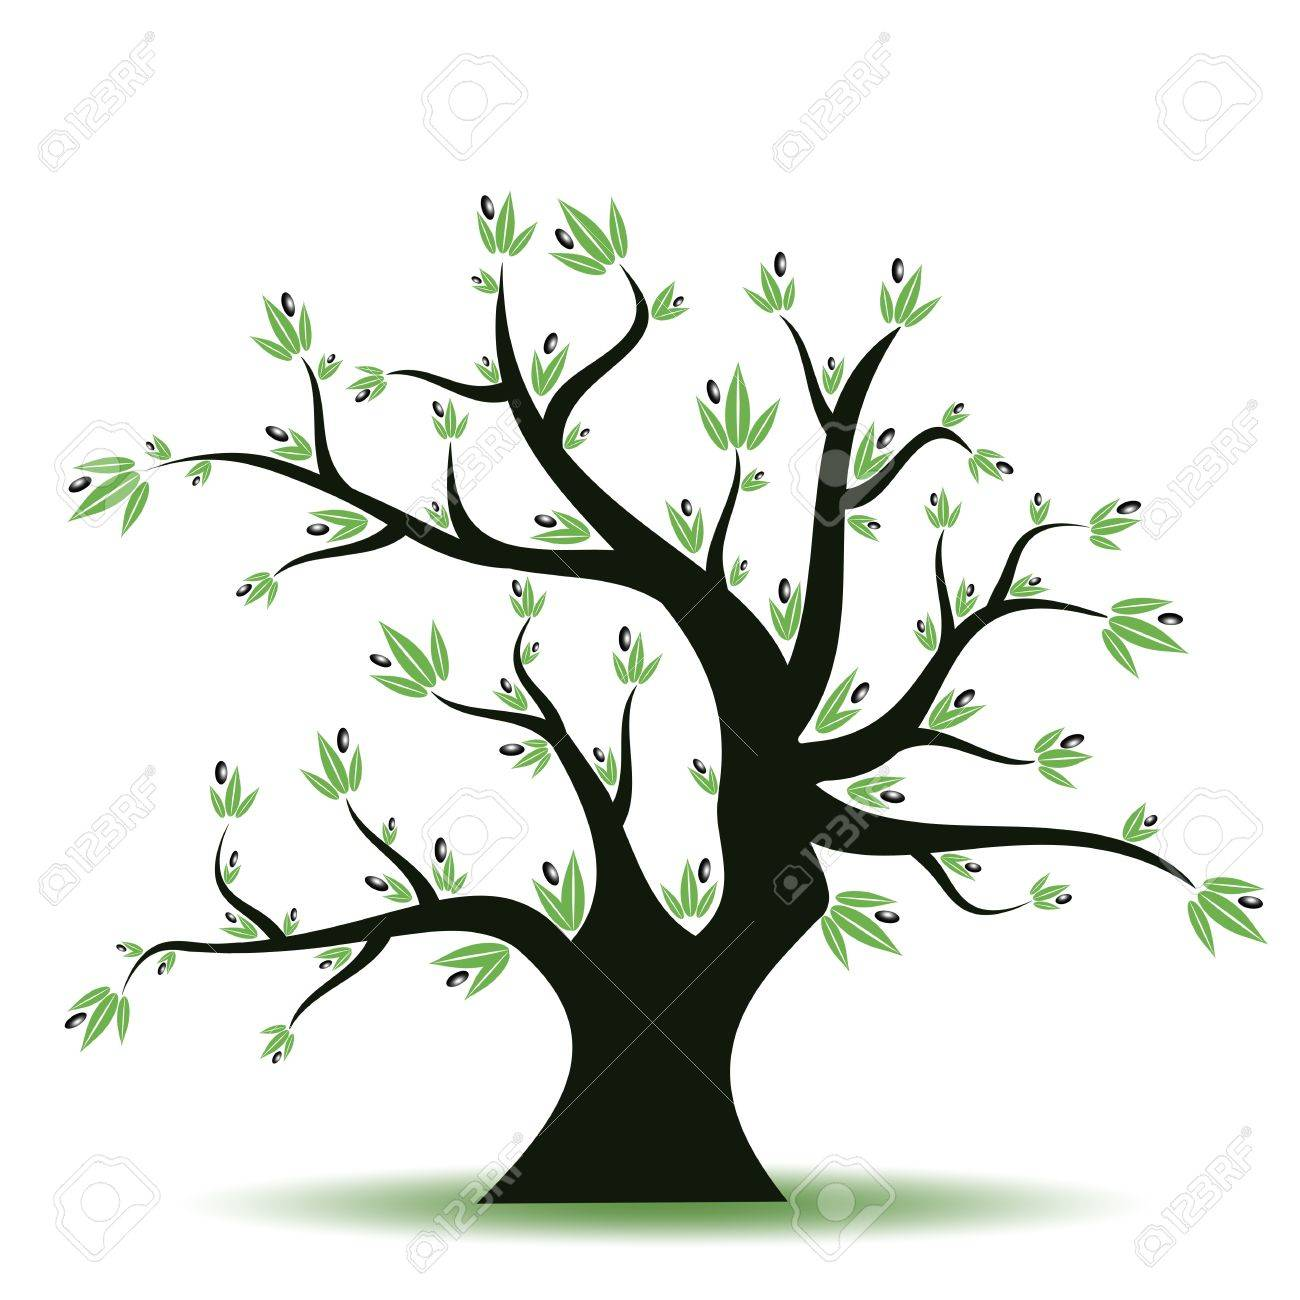 Abstract olive tree on white background Stock Photo - 9679032